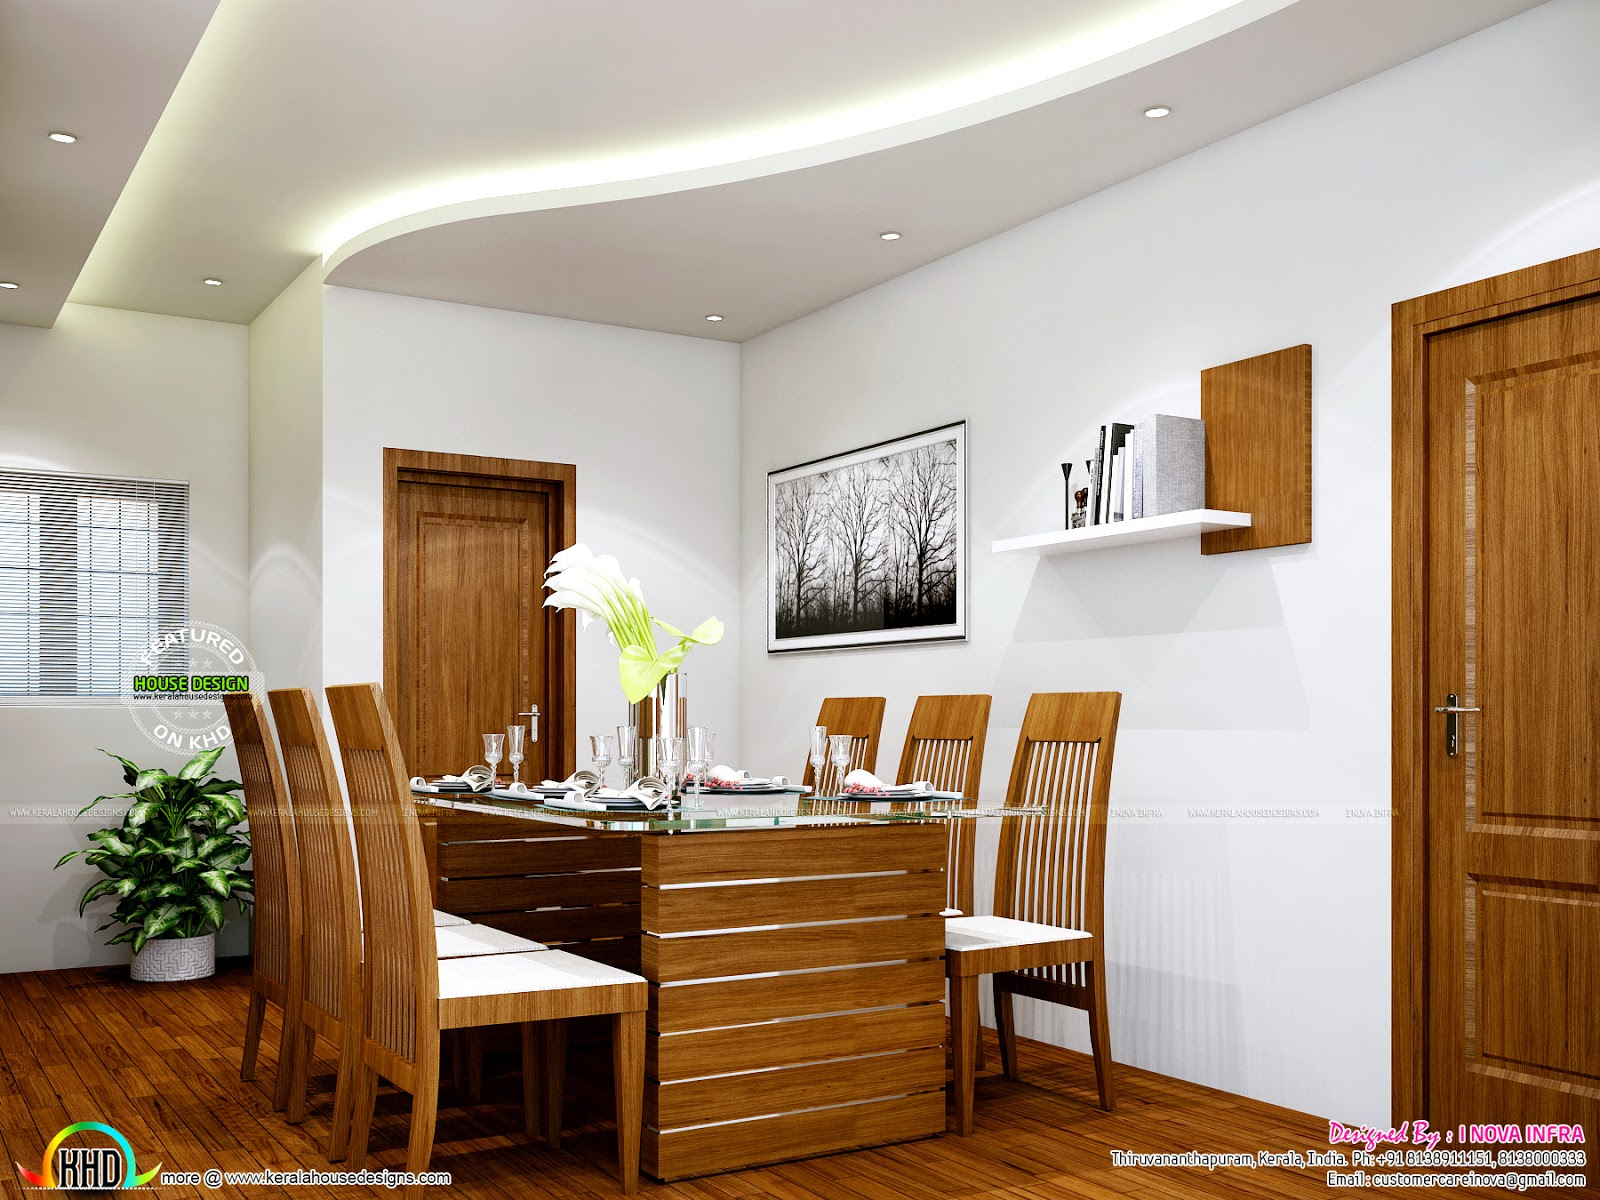 New classical interior works at trivandrum kerala home for Kerala interior designs